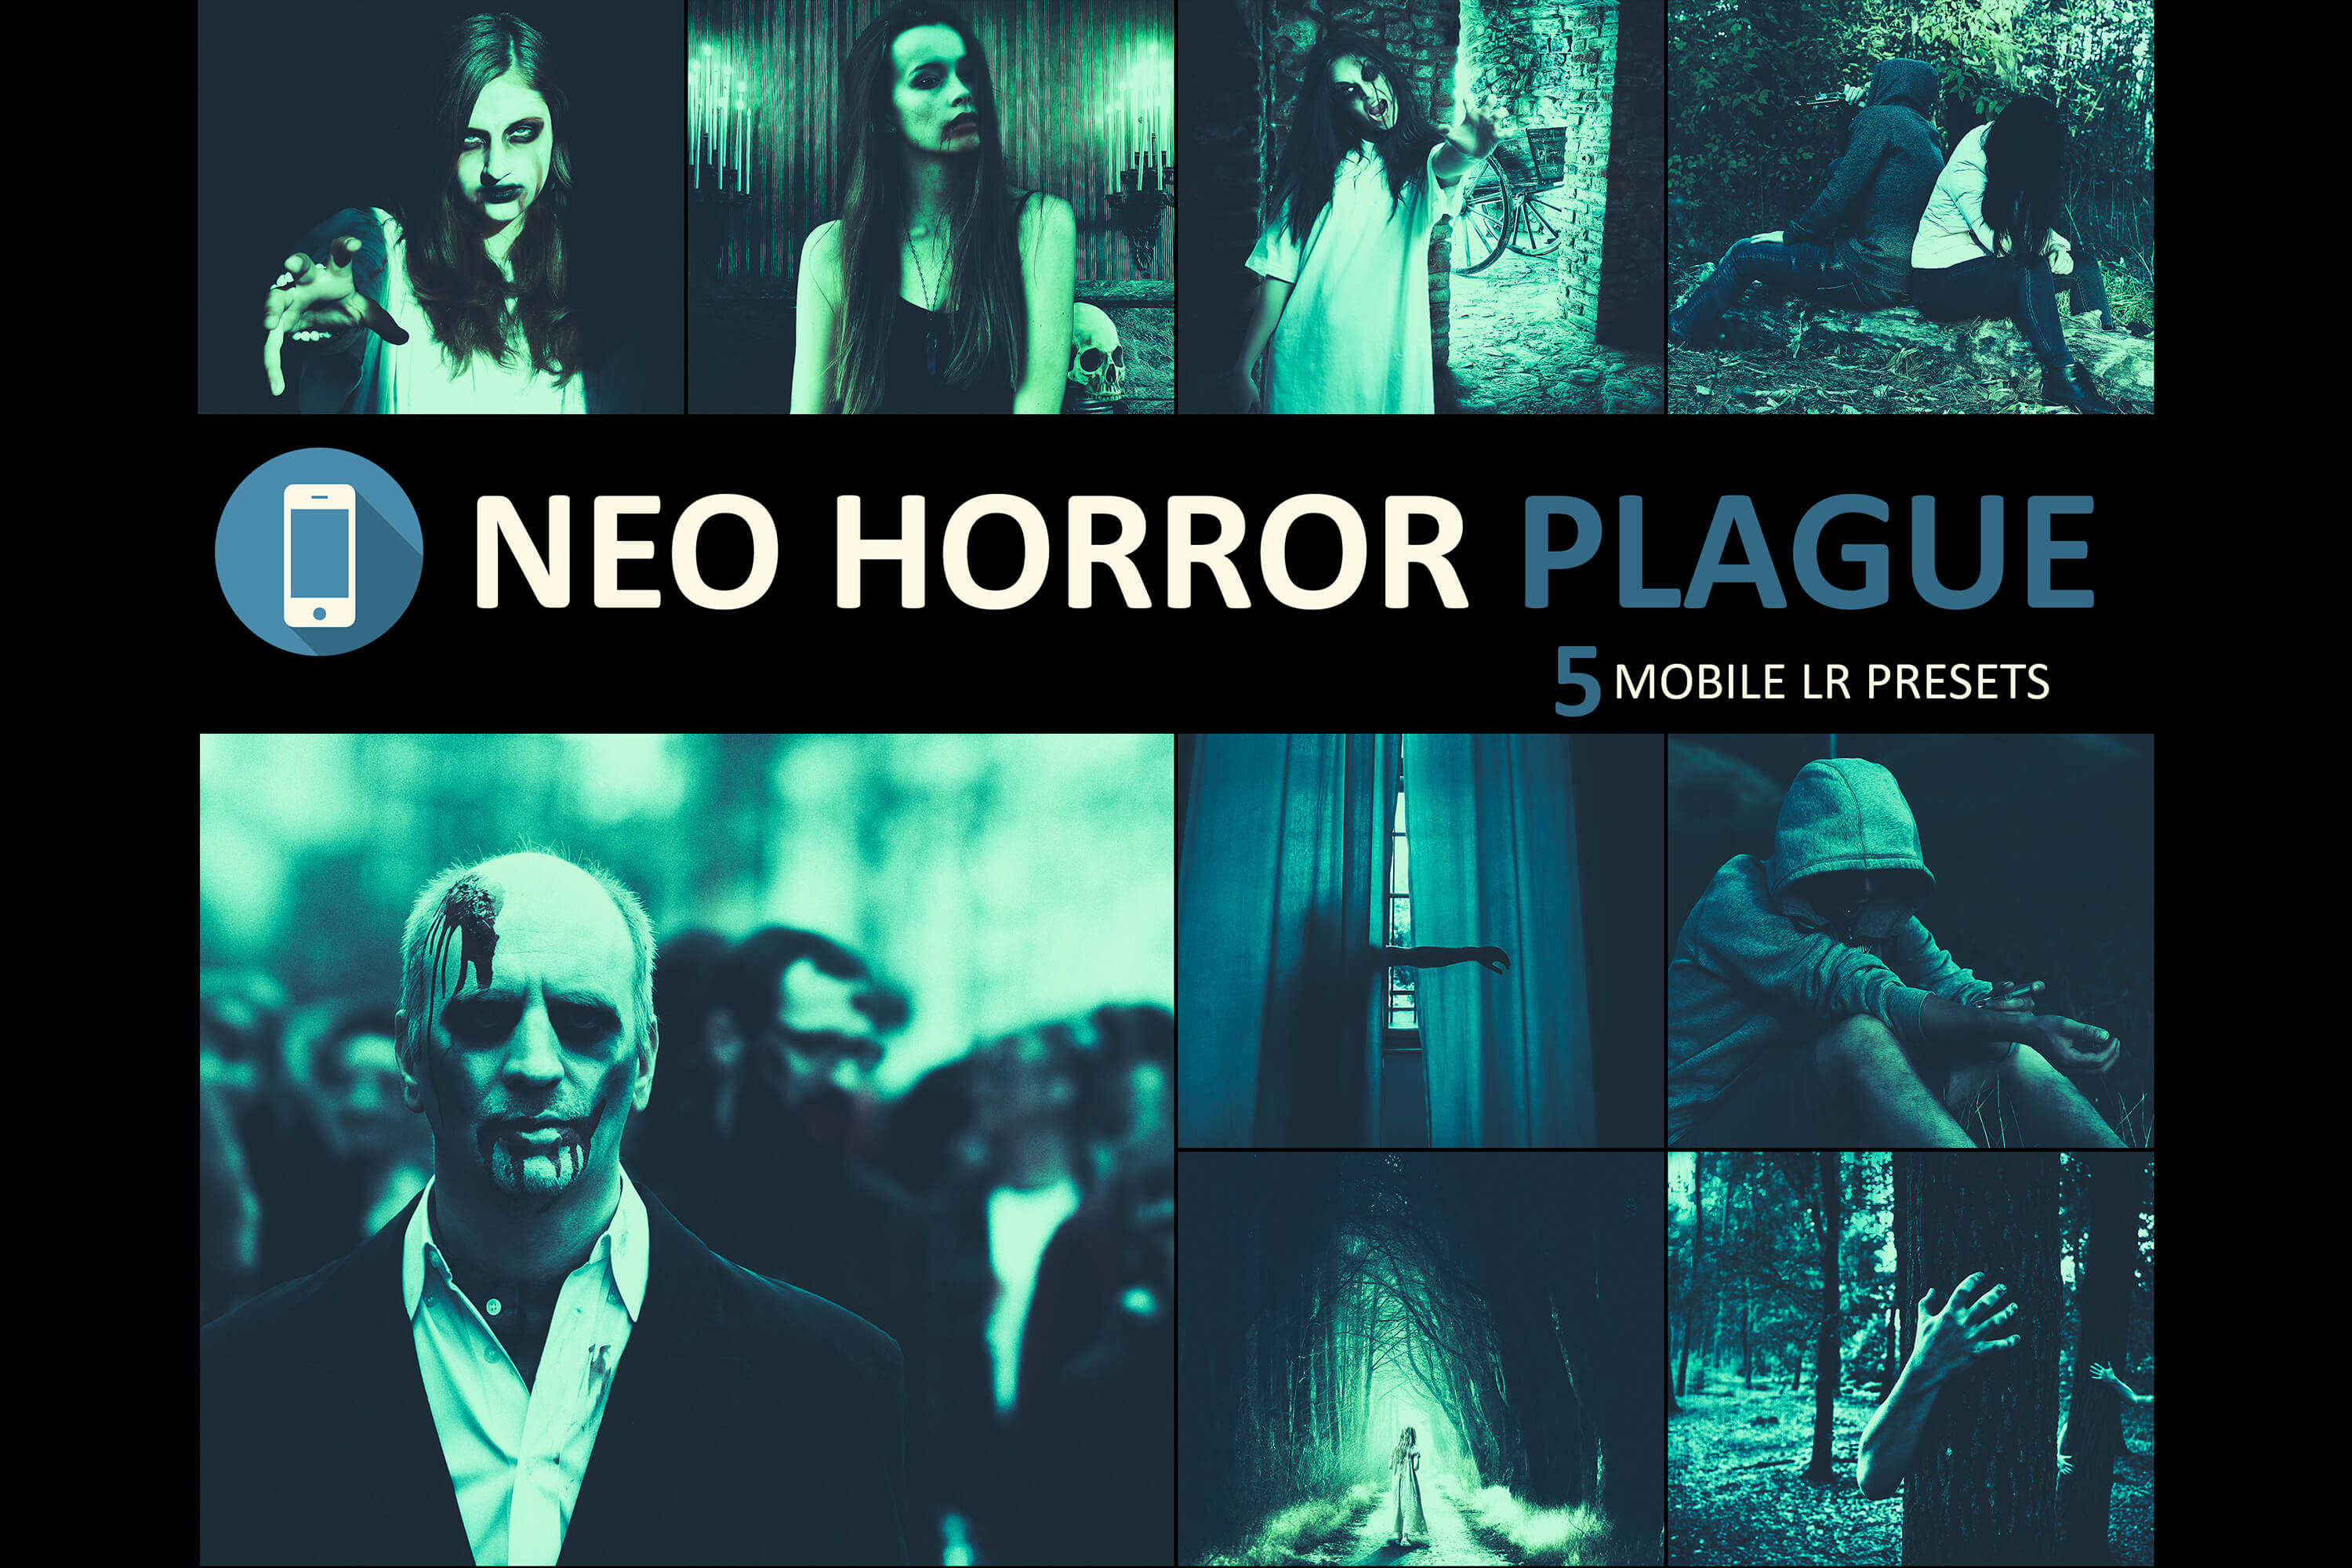 Neo Horror Plague mobile lightroom presets Graphic by 3Motional